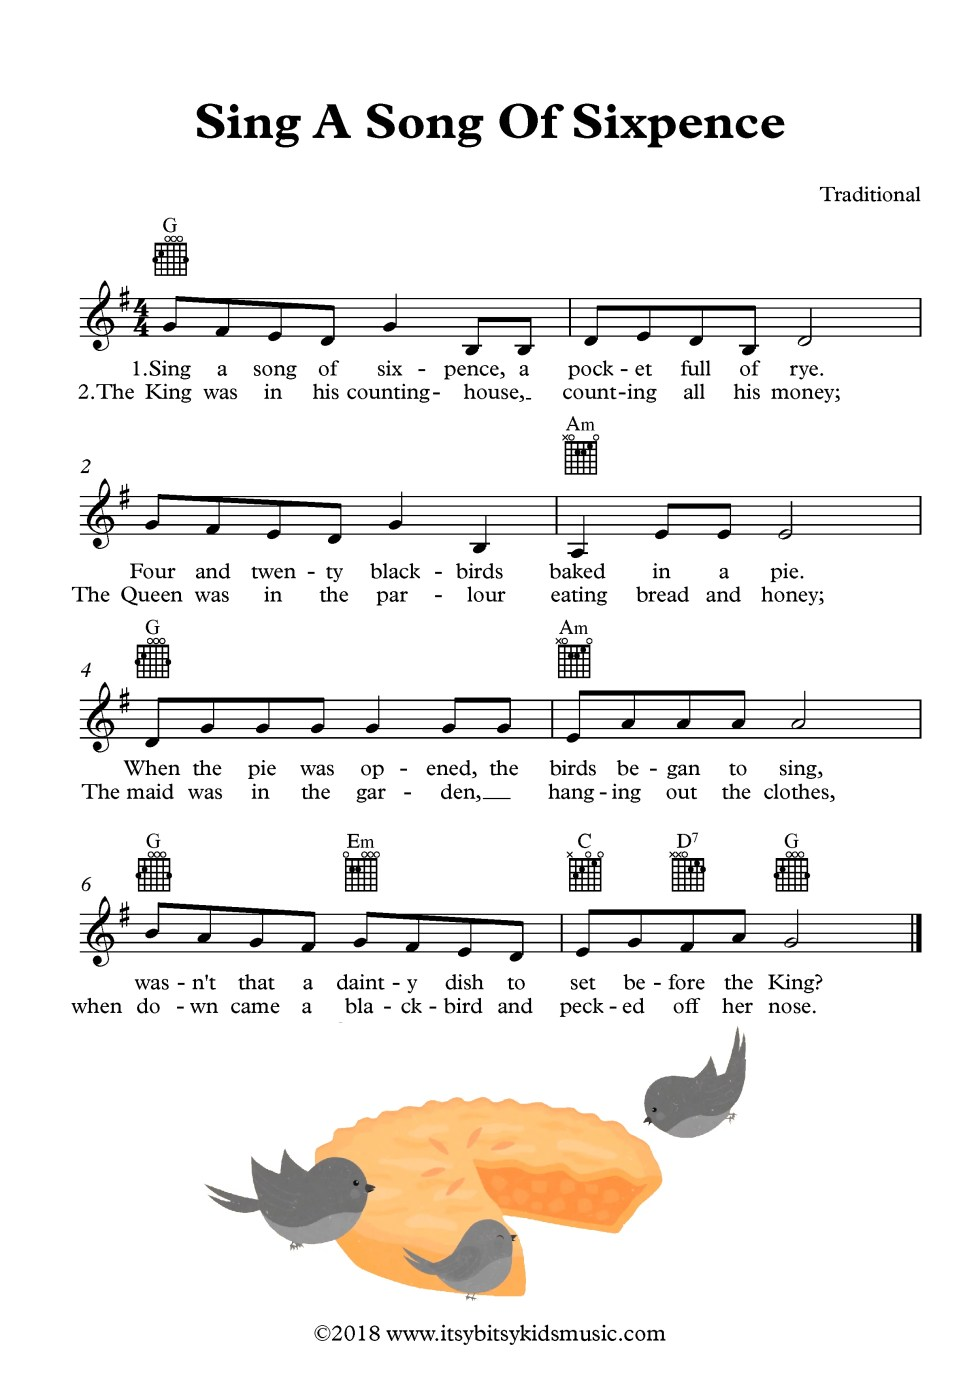 Sing A Song Of Sixpence Sheet Music With Chords And Lyrics